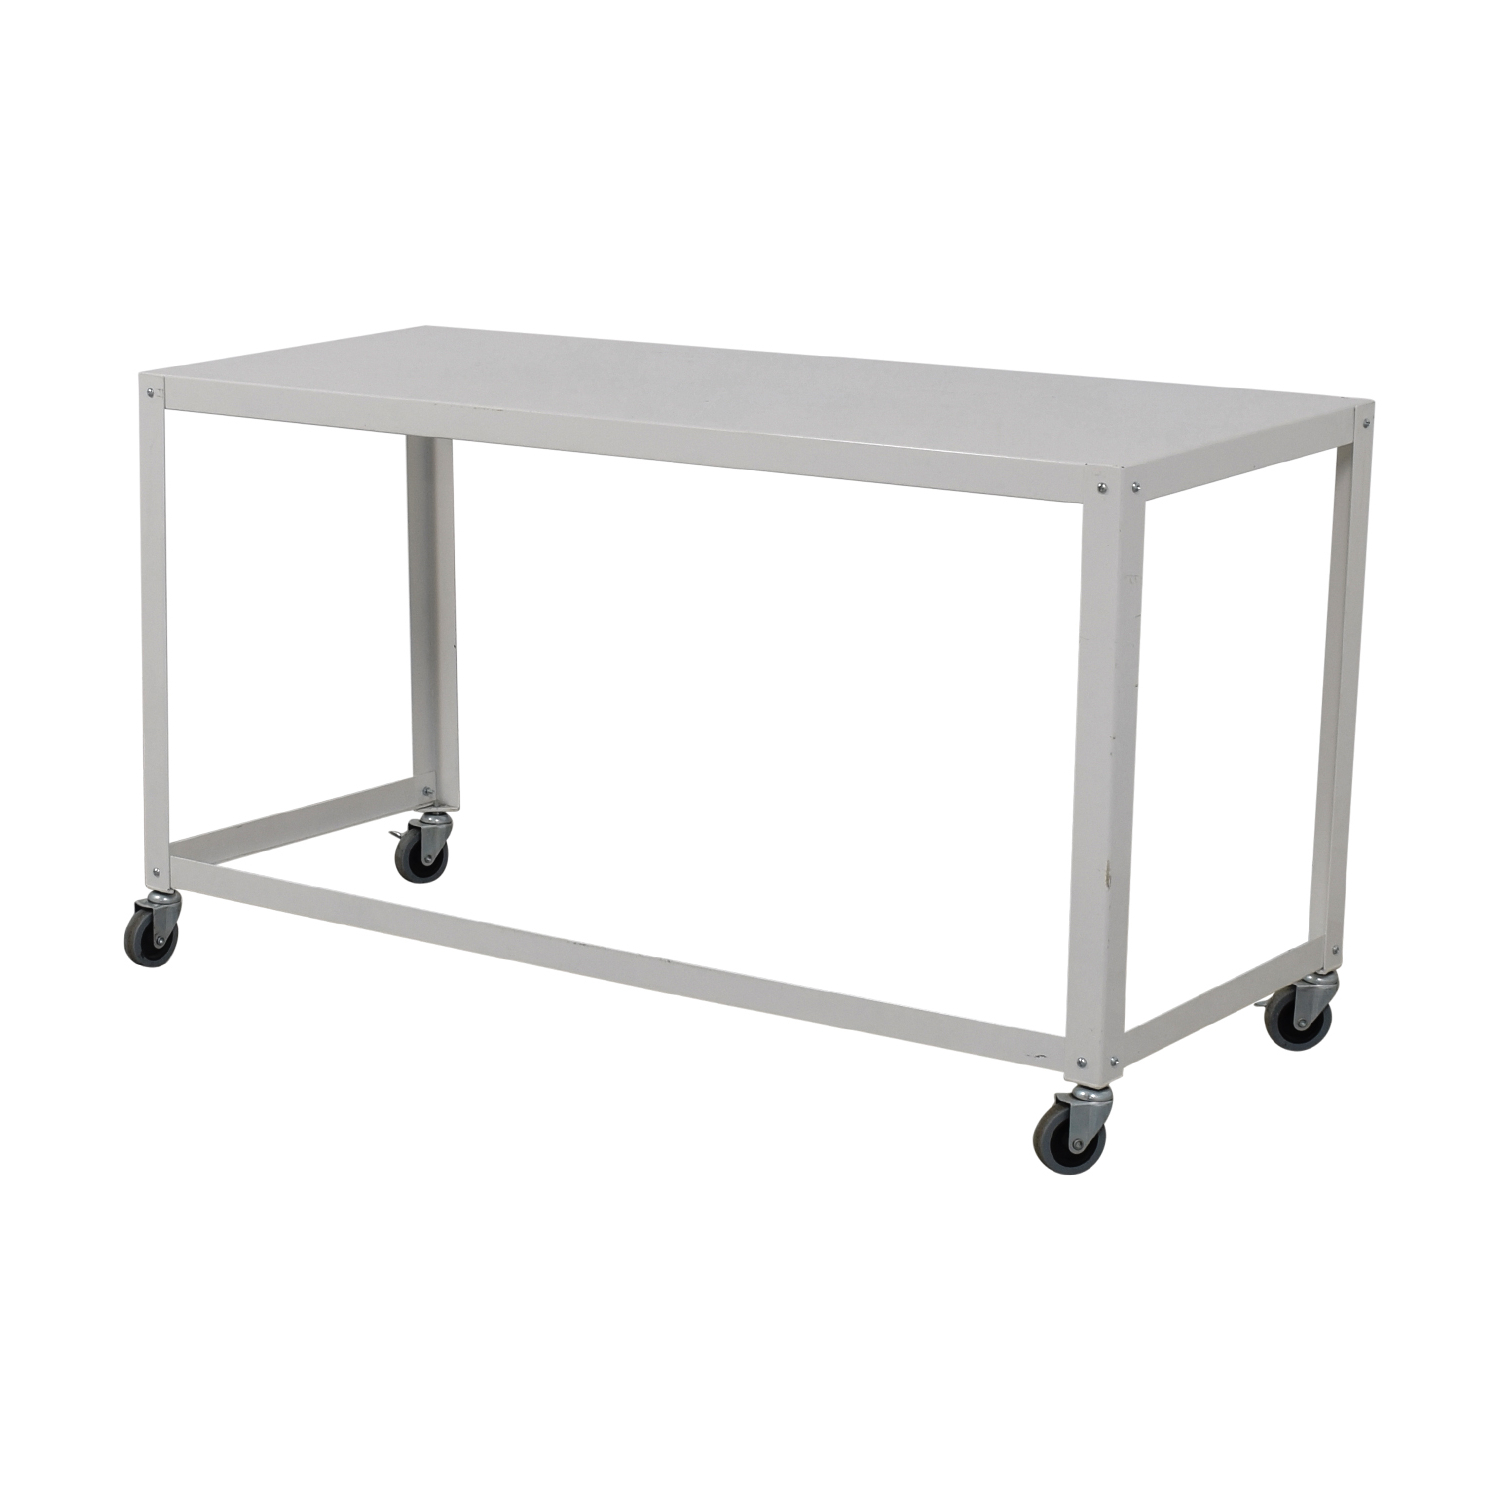 [%81% Off – Cb2 Cb2 Go Cart White Rolling Desk / Tables Intended For Well Known Go Cart White Rolling Coffee Tables|Go Cart White Rolling Coffee Tables Intended For Latest 81% Off – Cb2 Cb2 Go Cart White Rolling Desk / Tables|Well Known Go Cart White Rolling Coffee Tables Regarding 81% Off – Cb2 Cb2 Go Cart White Rolling Desk / Tables|Current 81% Off – Cb2 Cb2 Go Cart White Rolling Desk / Tables In Go Cart White Rolling Coffee Tables%] (View 2 of 20)